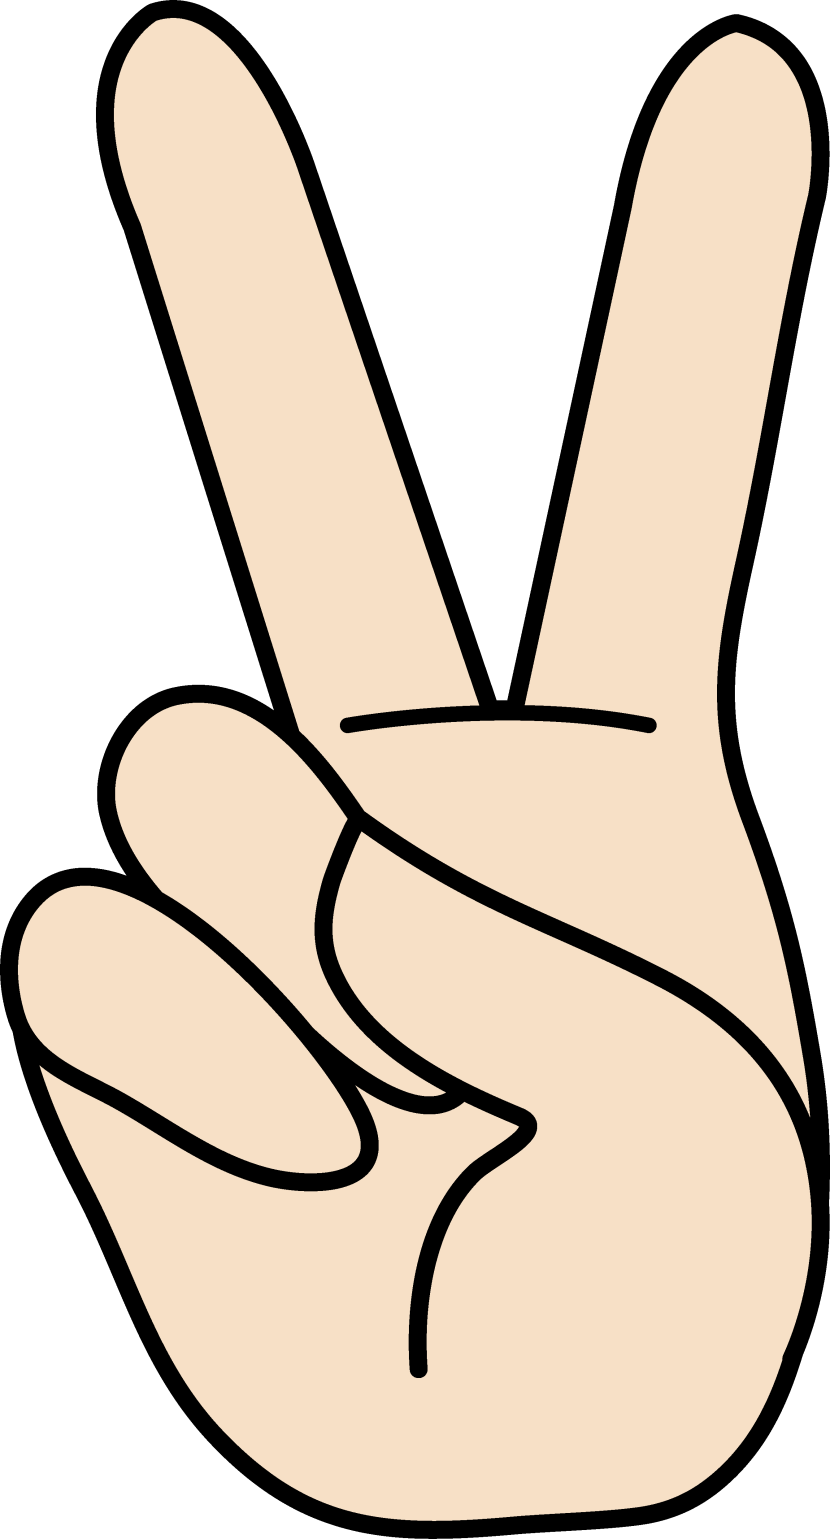 Peace sign clip art clipartion hand peace sign symbol free biocorpaavc